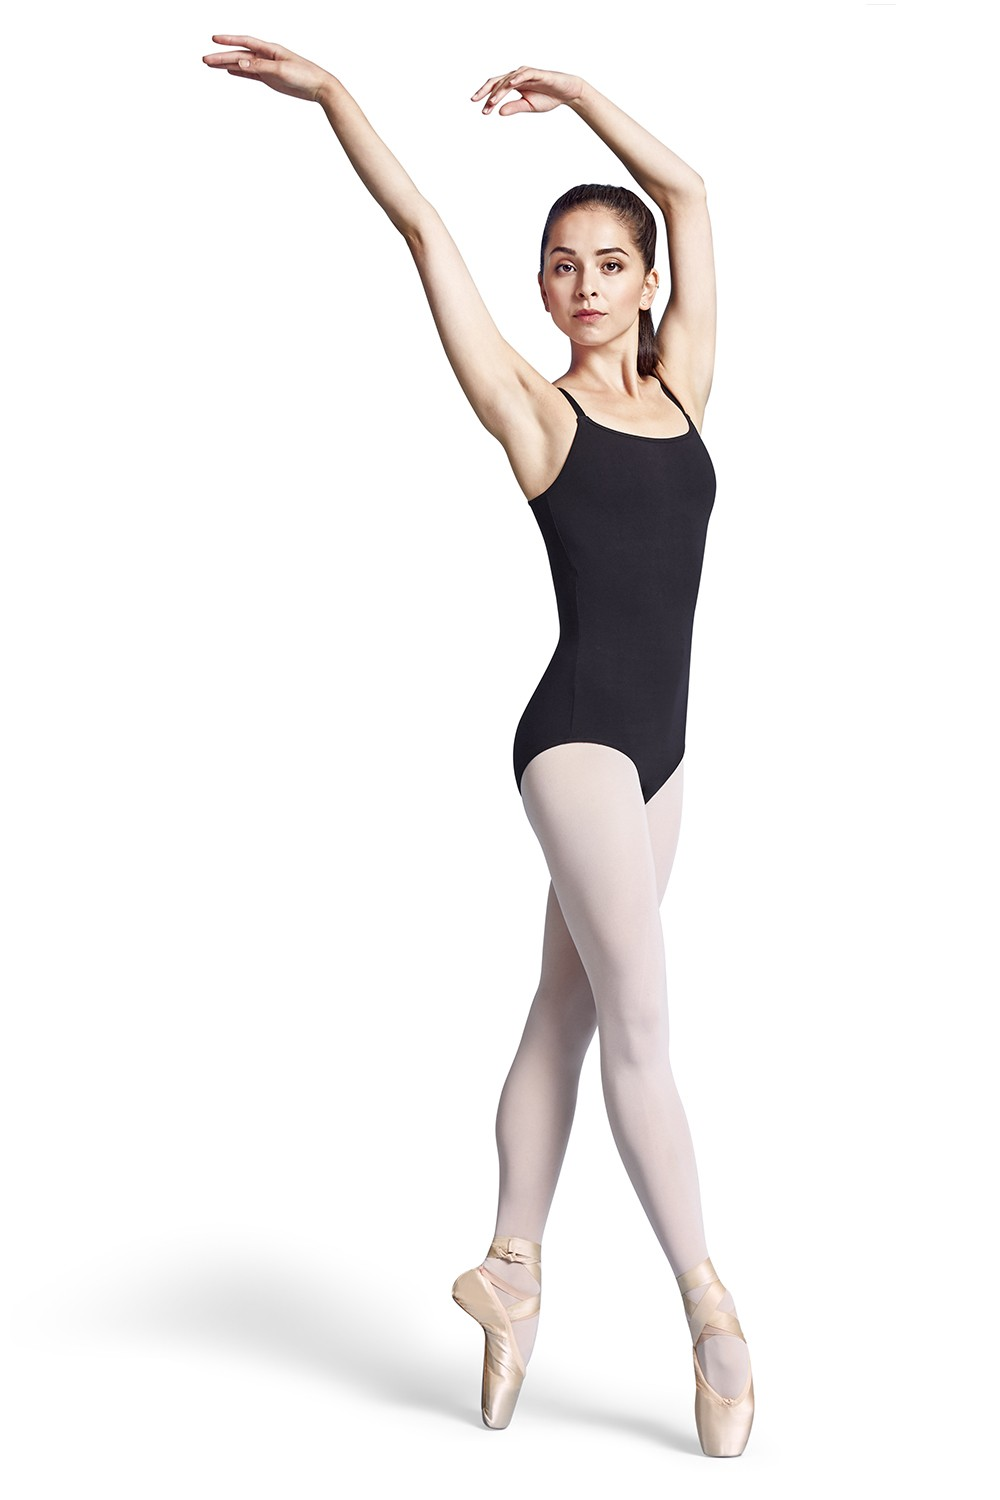 Adjustable Strap Leo Women's Dance Leotards